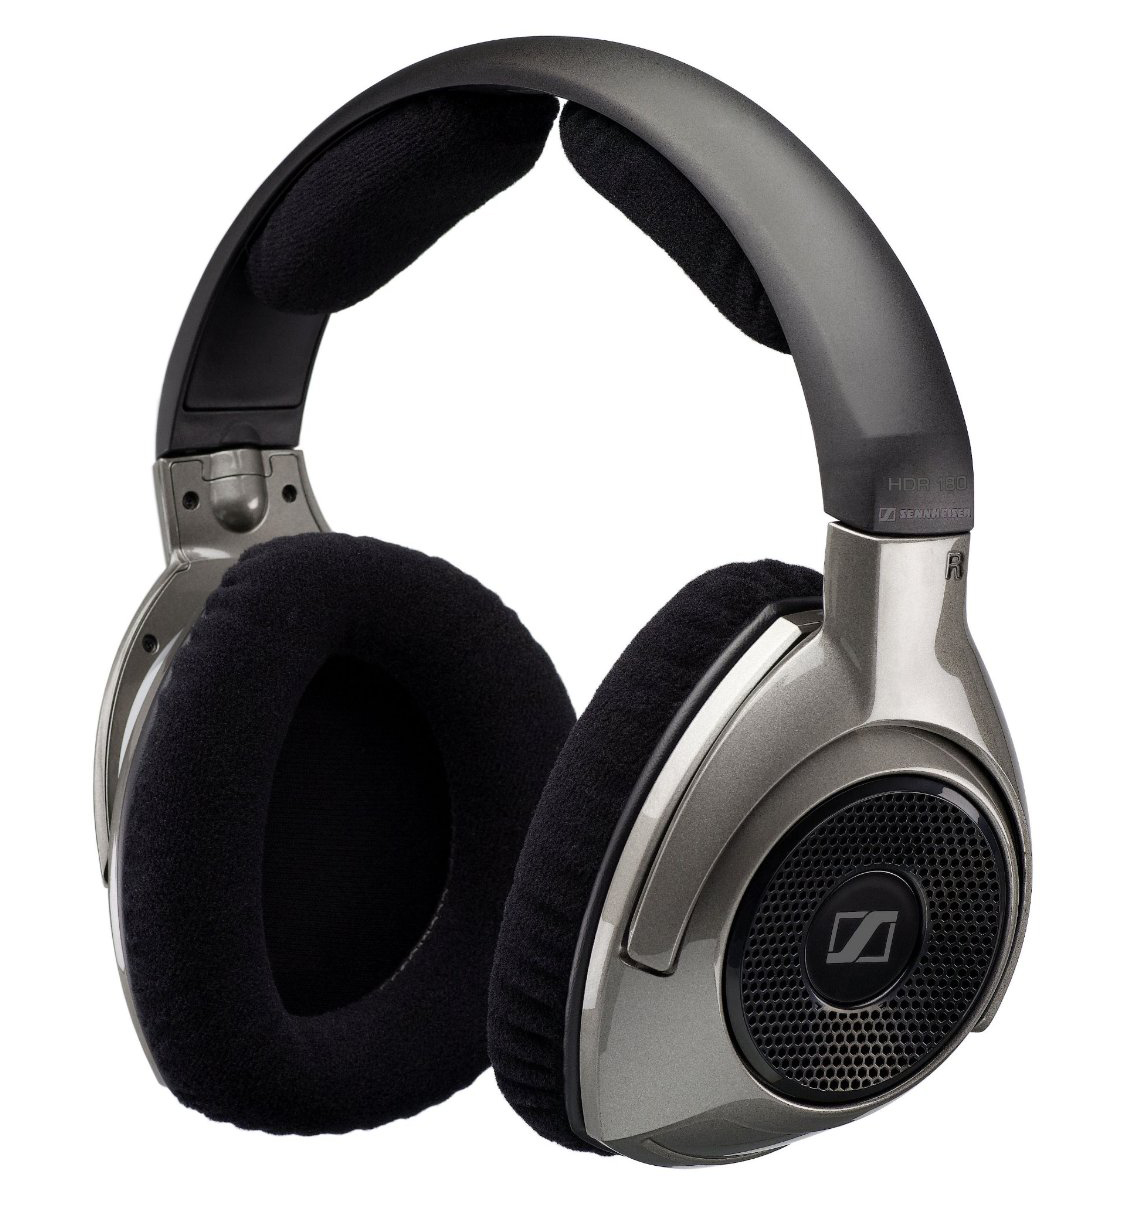 Sennheiser Hdr 180 Reviews Wireless Headphone Digital Rs175 Black